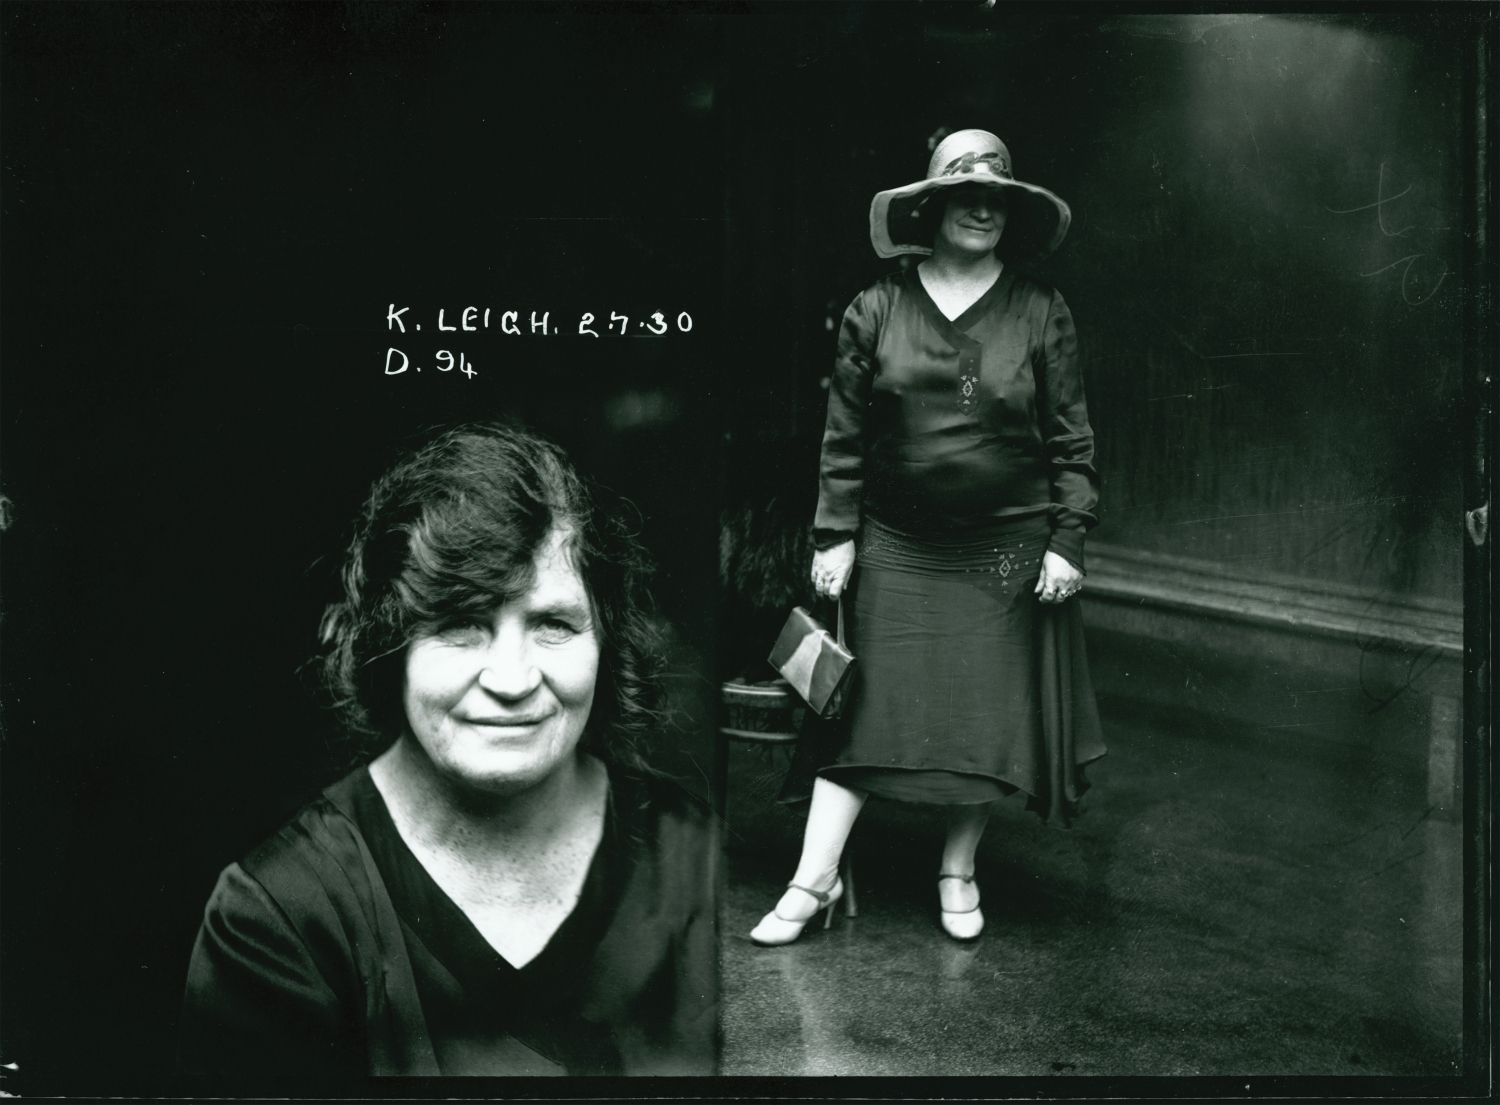 """Head shot inscribed with """"K. Leigh. 2.7.30. D. 94"""" side by side with full length portrait with hat and handbag."""